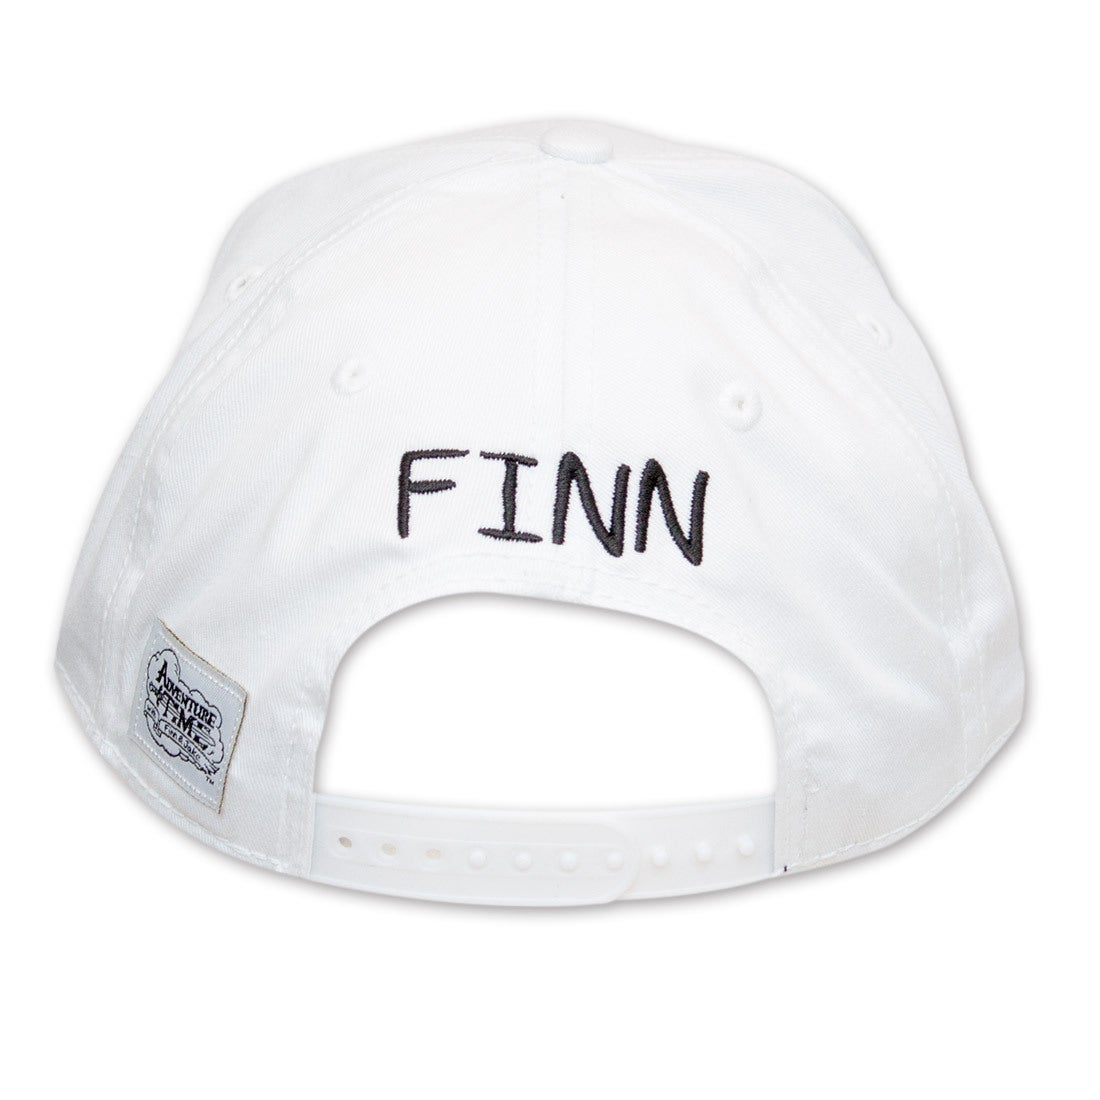 ebaf890169c Shop Adventure Time Finn White Cap - Free Shipping On Orders Over  45 -  Overstock.com - 11520095